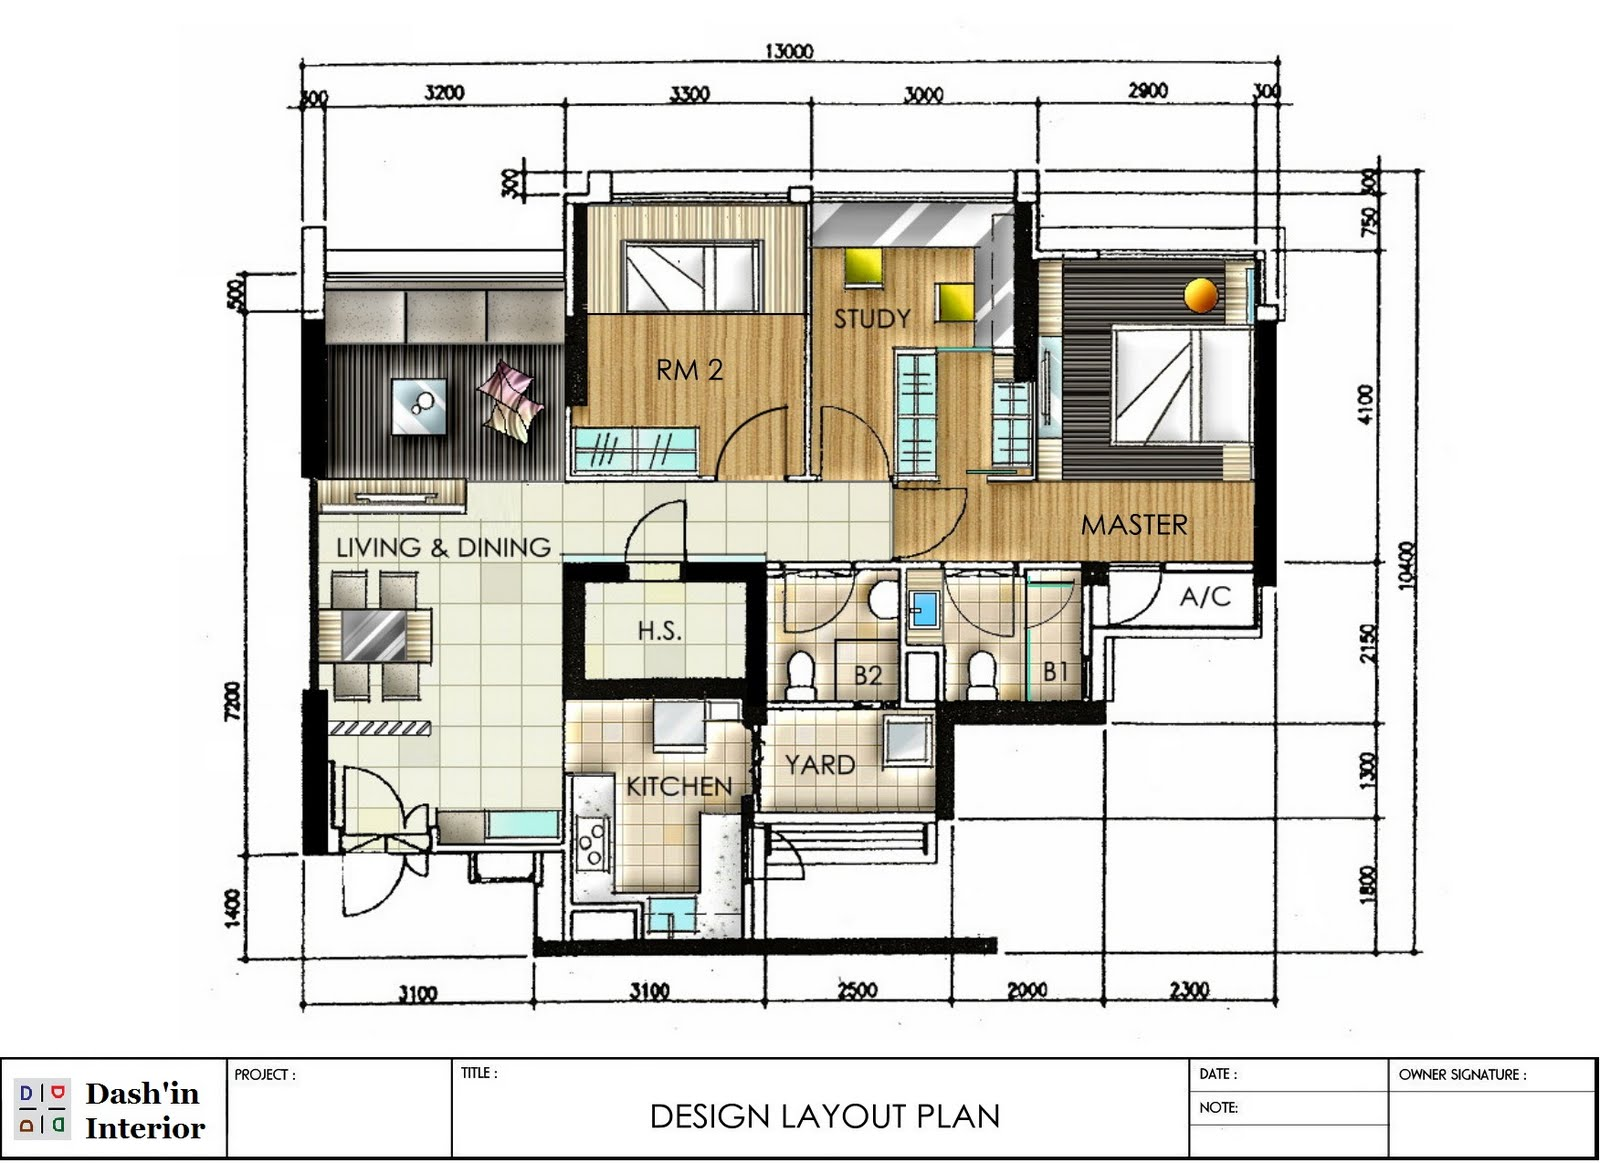 Dash 39 in interior hand drawn designs floor plan layout Plan your home design